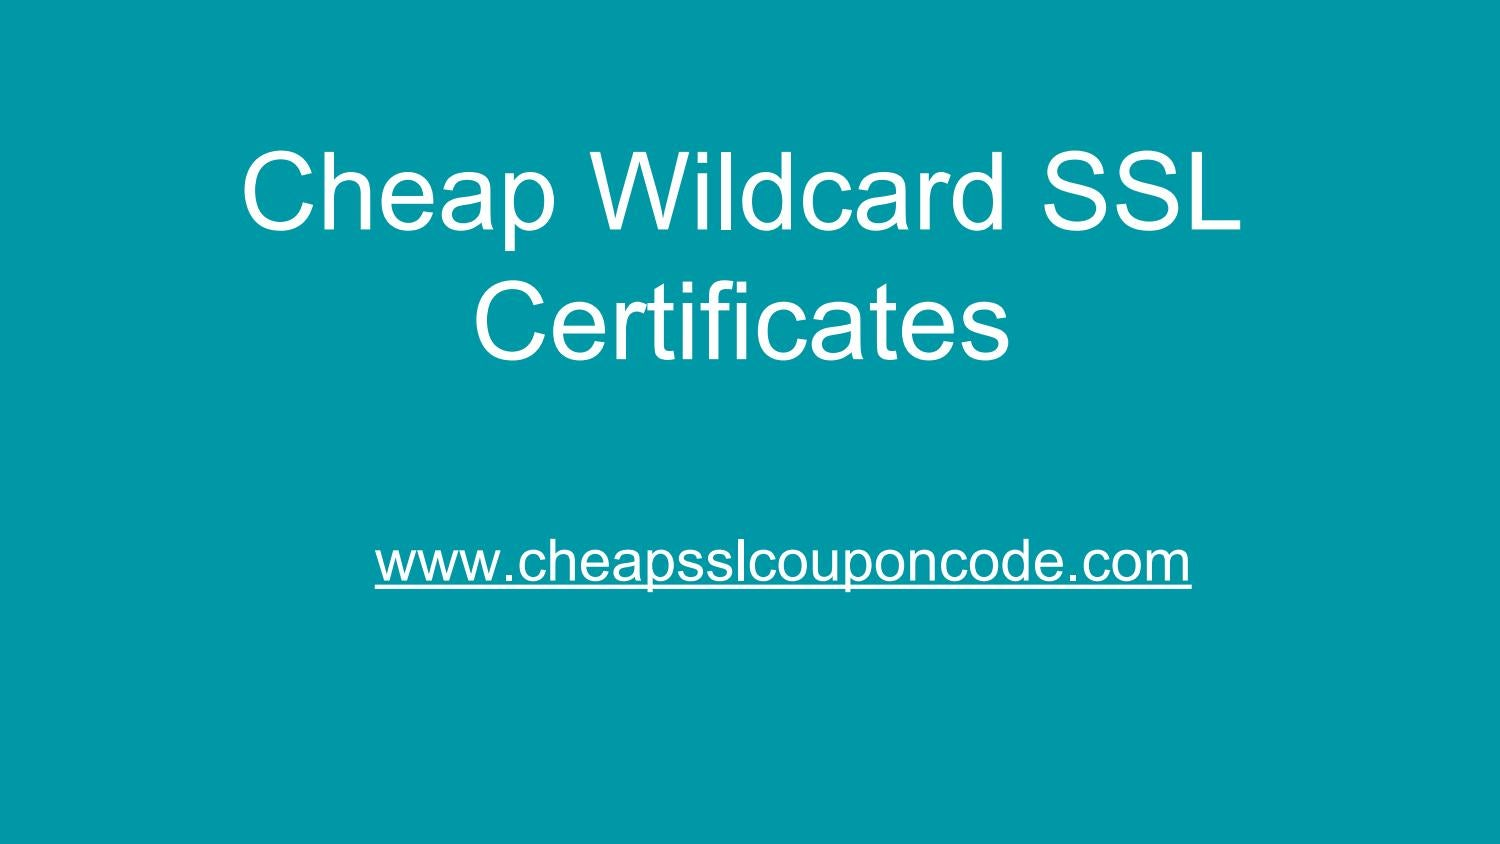 Cheap Wildcard Ssl Certificates By Cheap Ssl Coupon Code Issuu